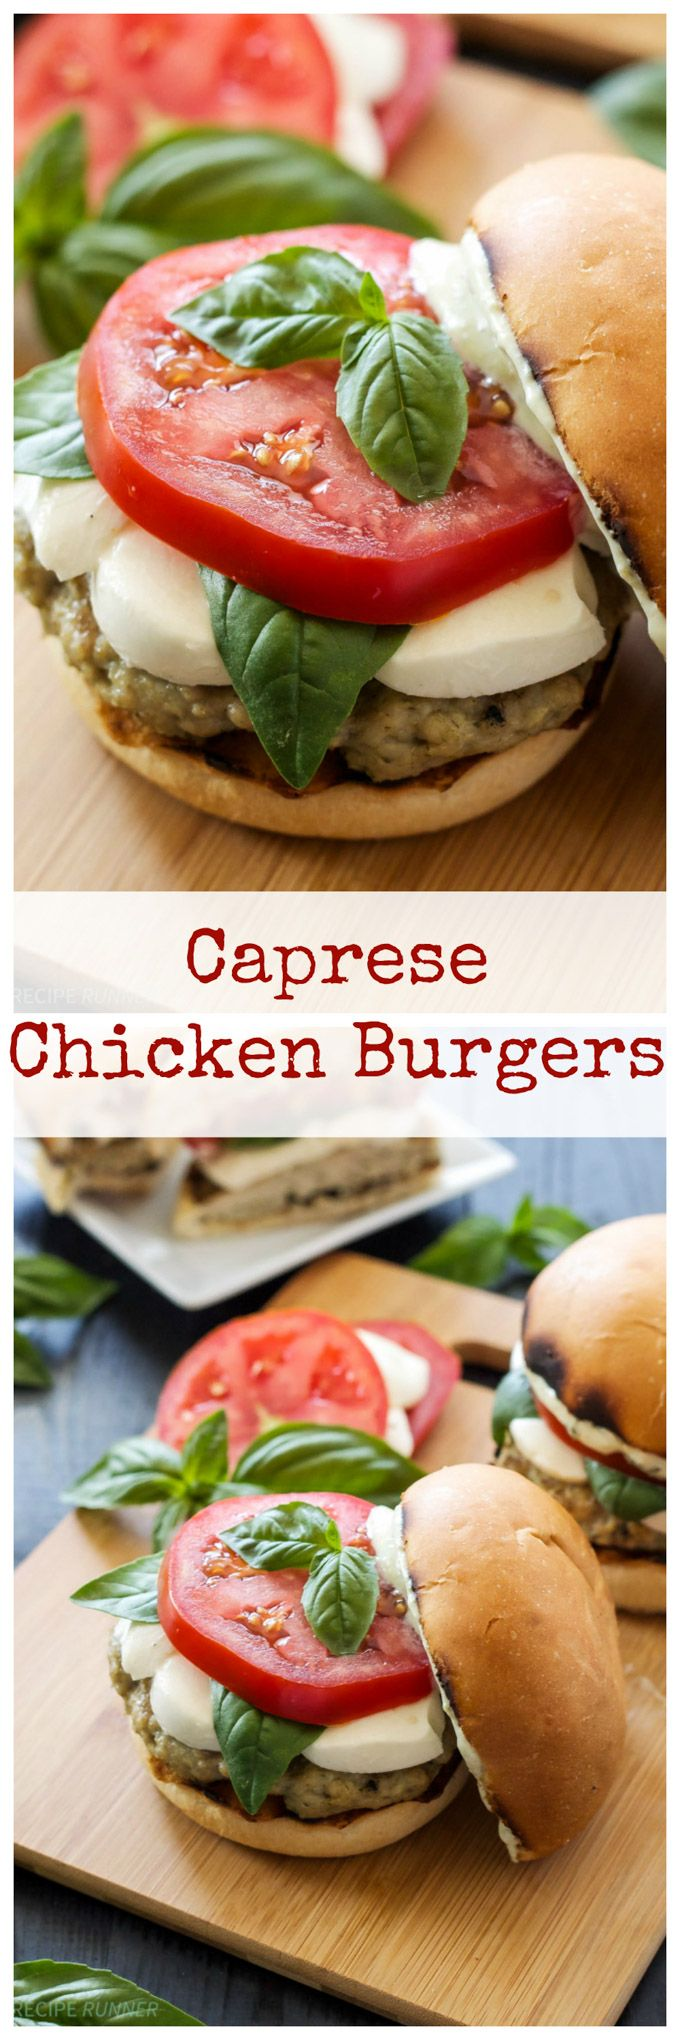 Caprese Chicken Burgers  Everything you love about caprese salad in burger form! You've gotta try these!